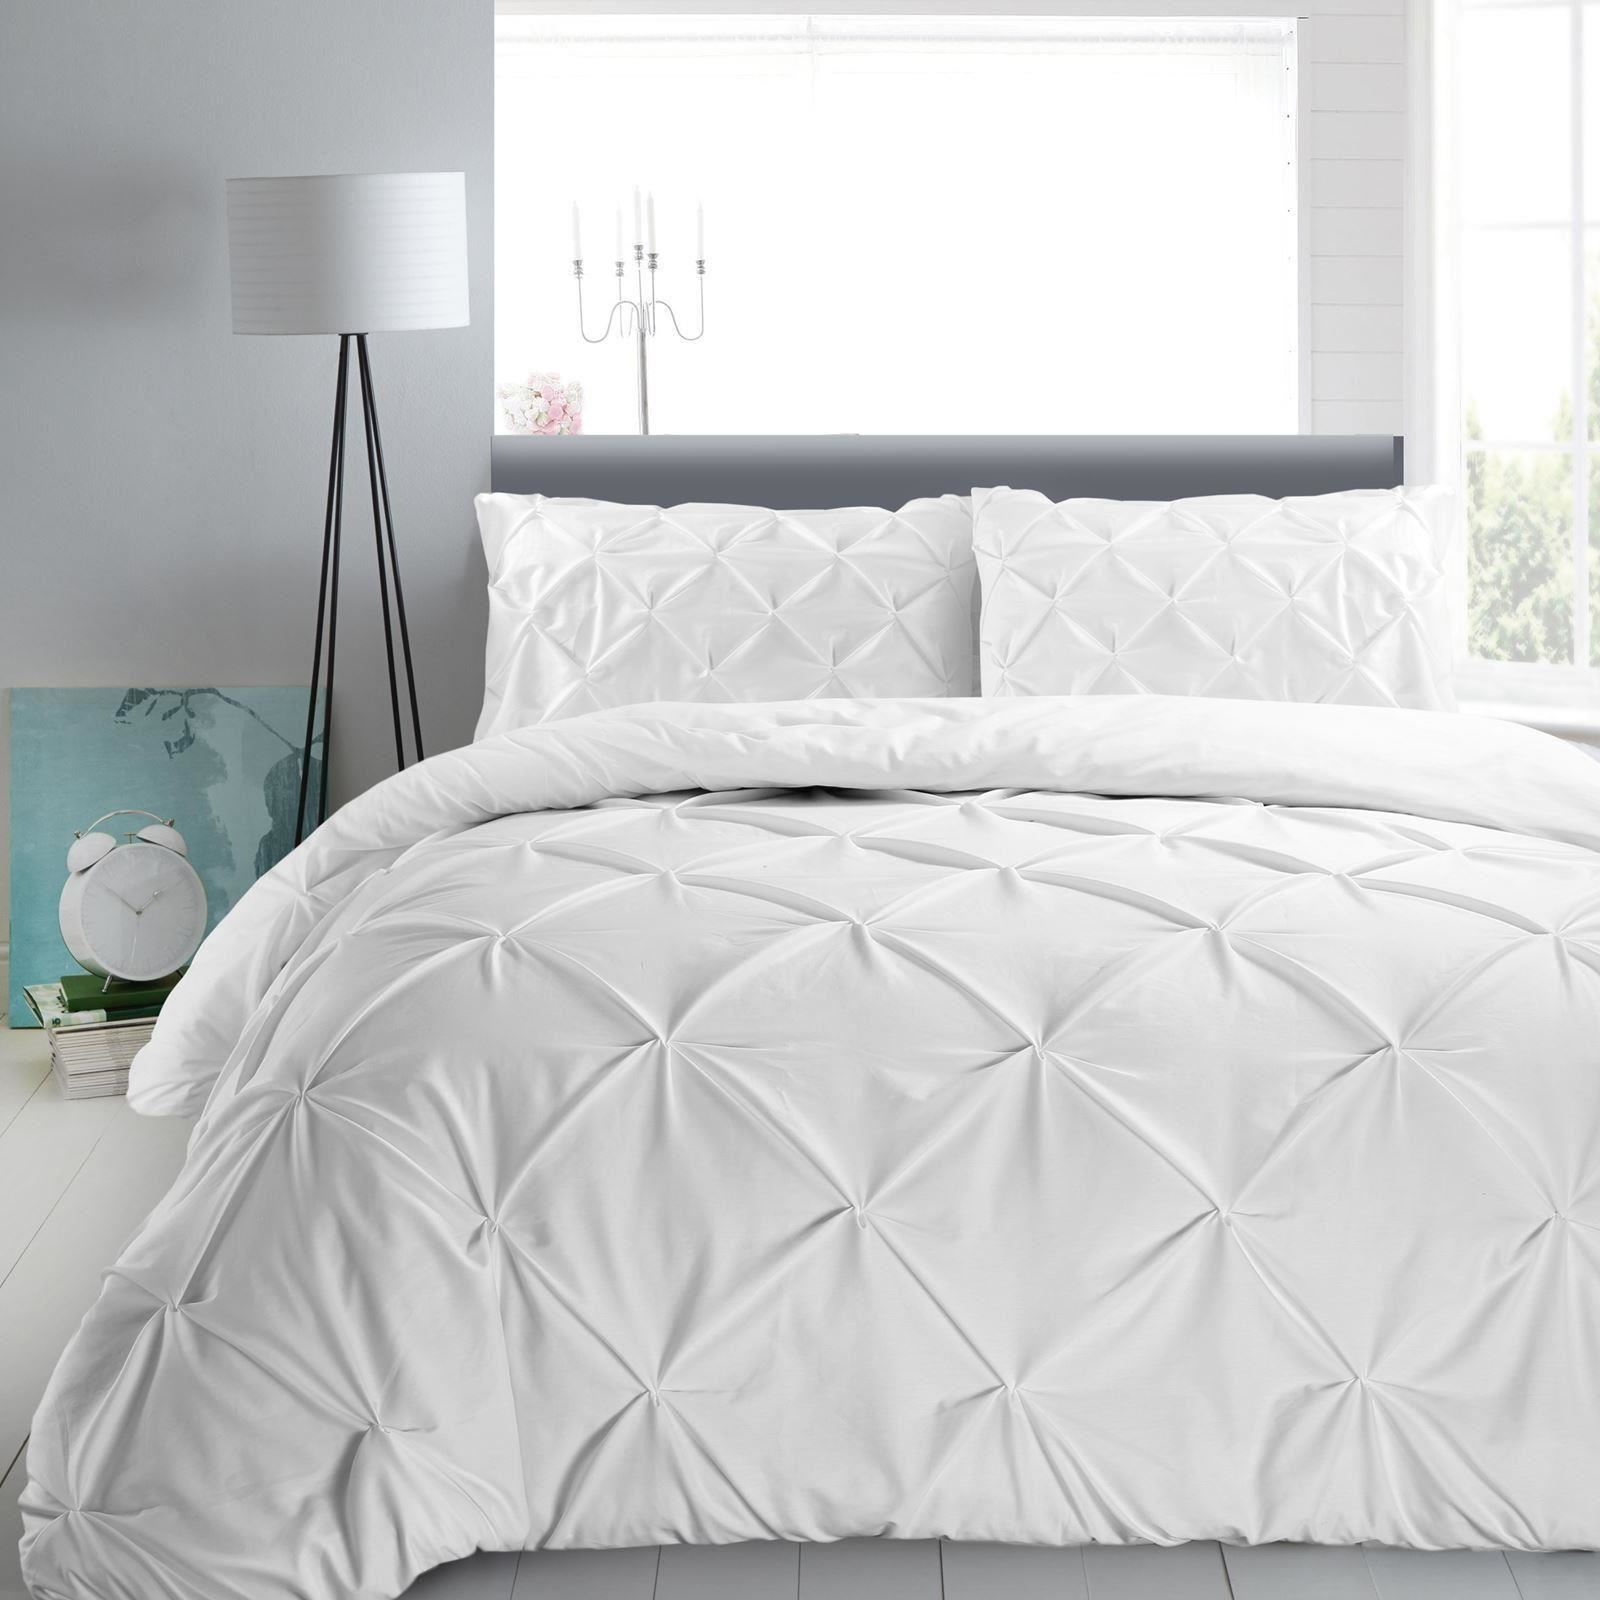 amazon bambeco organic sale pinch grey fascinating reviews sets pintuck info covers pleat size king canada pinched pillow tc cream set bedding west coloured of sateen double then cotton blanket page shams multi quilt kohphiphi duvets ruched frozen twin best sham elm fulgurant black cover large duvet